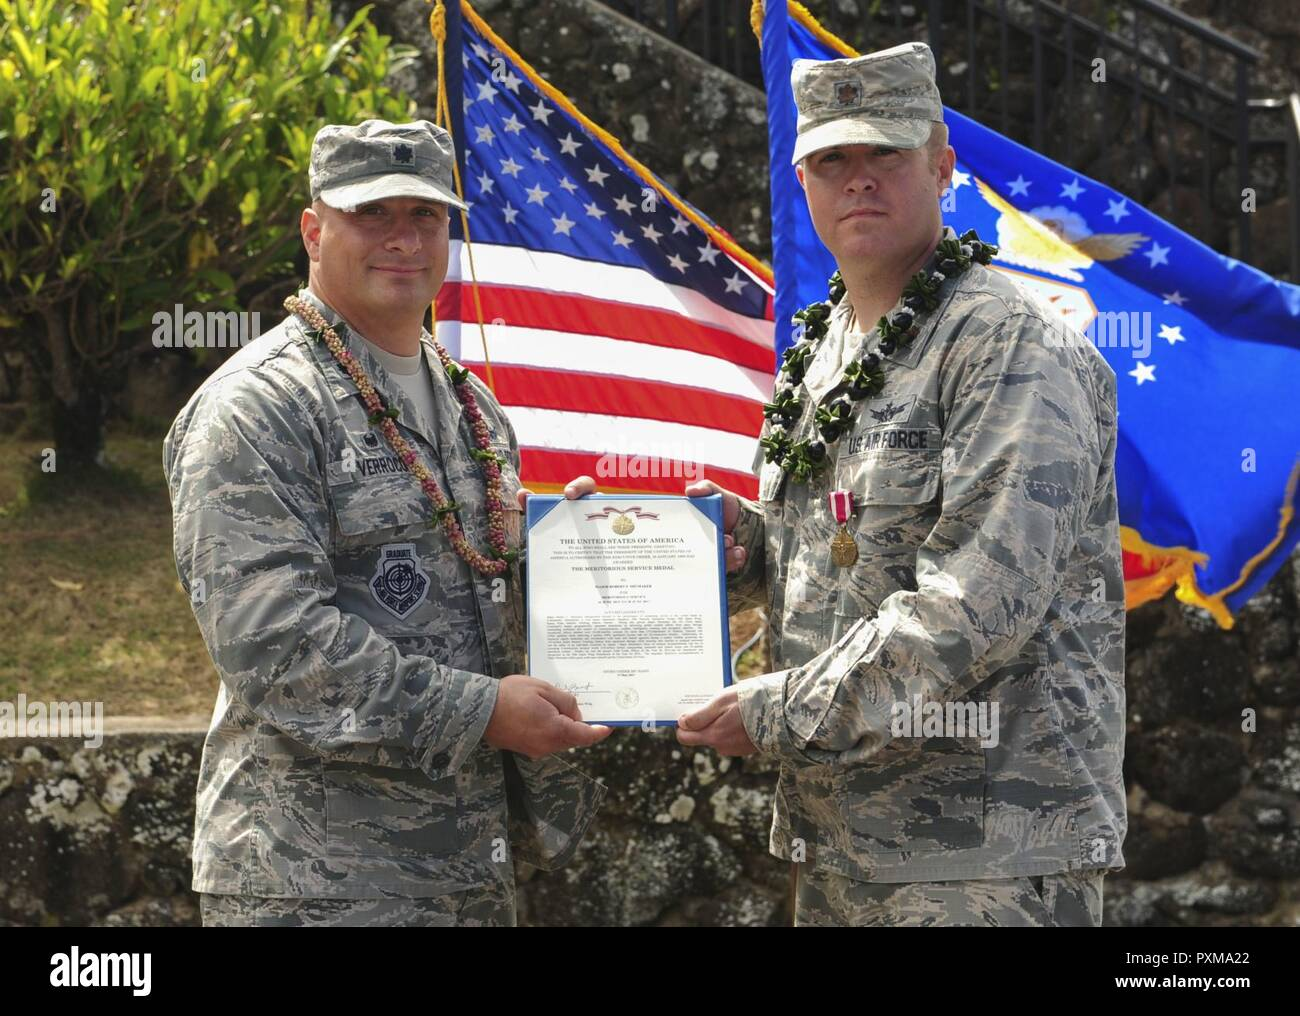 Lt. Col. Phillip Verroco, 21st Space Operations Squadron commander, presents Maj. Robert F. Shumaker, Detachment 3 outgoing commander, with the Meritorious Service Medal during the Detachment 3 Change of Command Ceremony, Kaena Point, Hawaii, June 9, 2017.  Detachment 3 is a component of the 21st Space Operations Squadron, 50th Network Operations Group, 50th Space Wing, and is located on the western tip of Oahu.  It is the oldest and one of seven worldwide remote tracking stations in the Air Force Satellite Control Network. - Stock Image